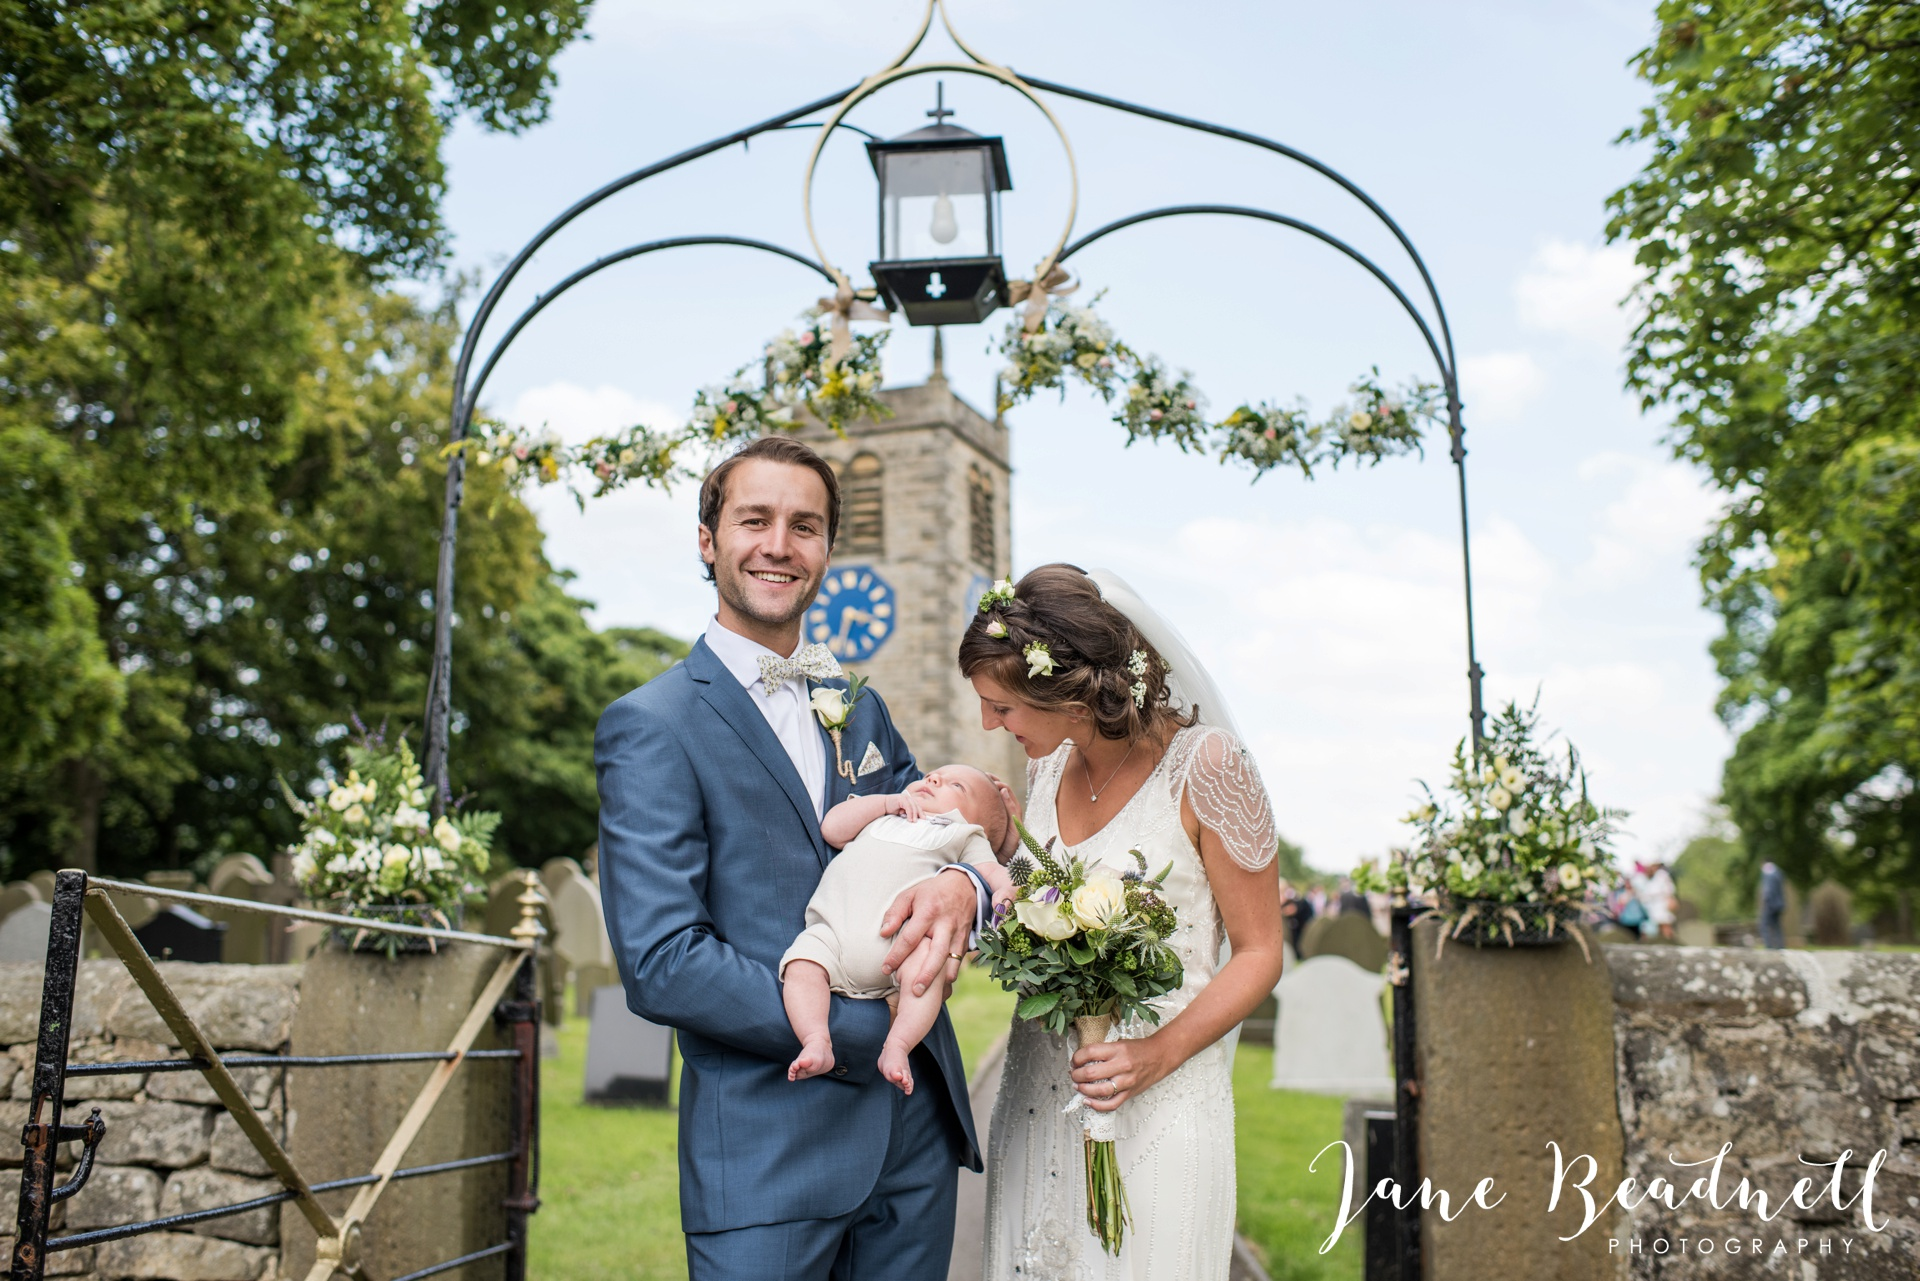 Jane Beadnell fine art wedding photographer Leeds_0056